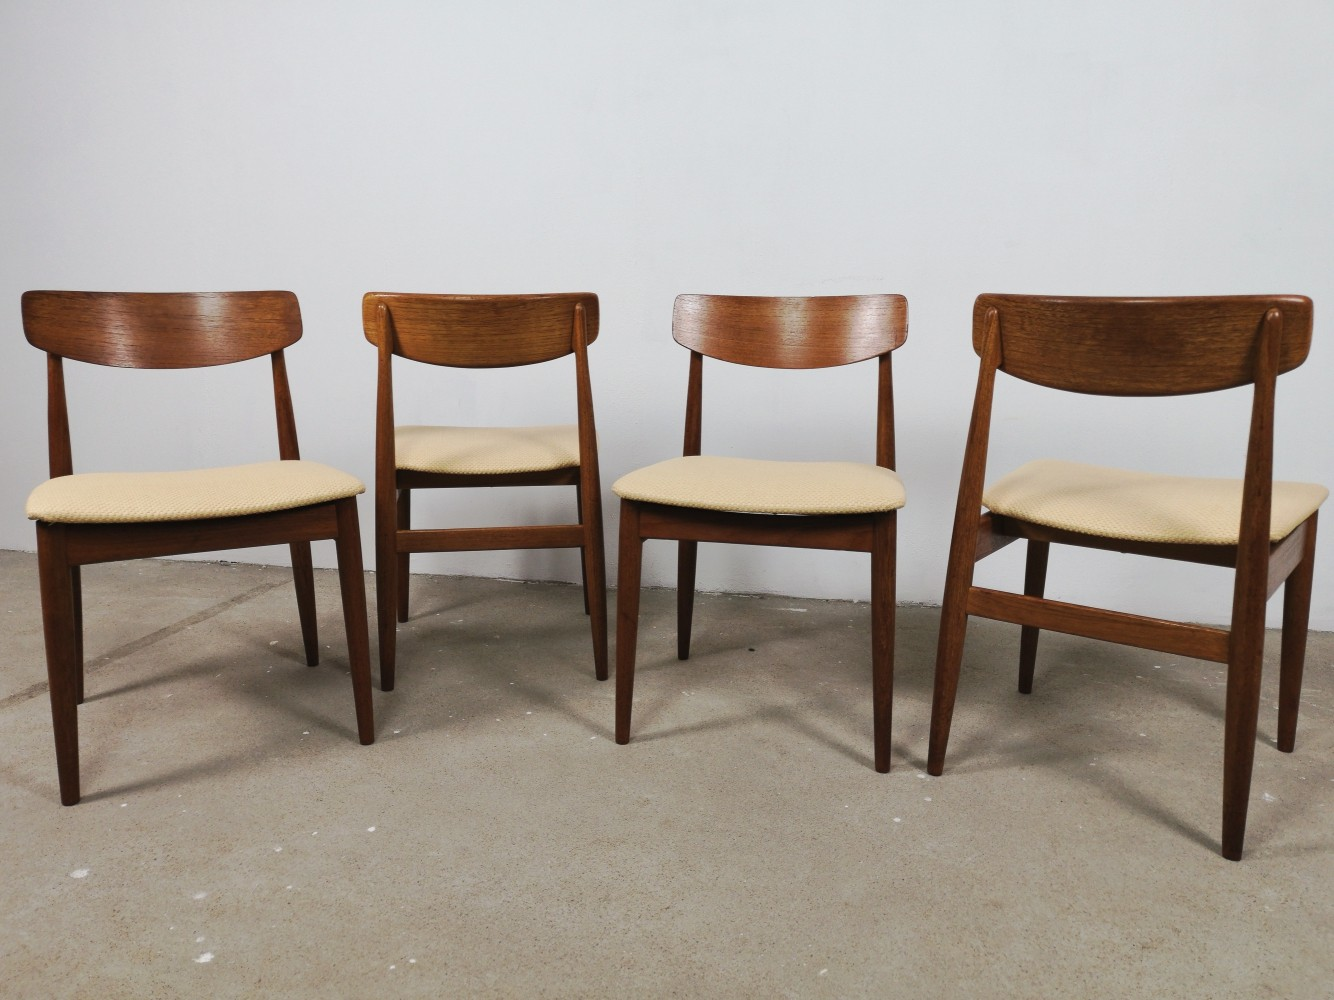 Set of 4 teak dining chairs by Casala